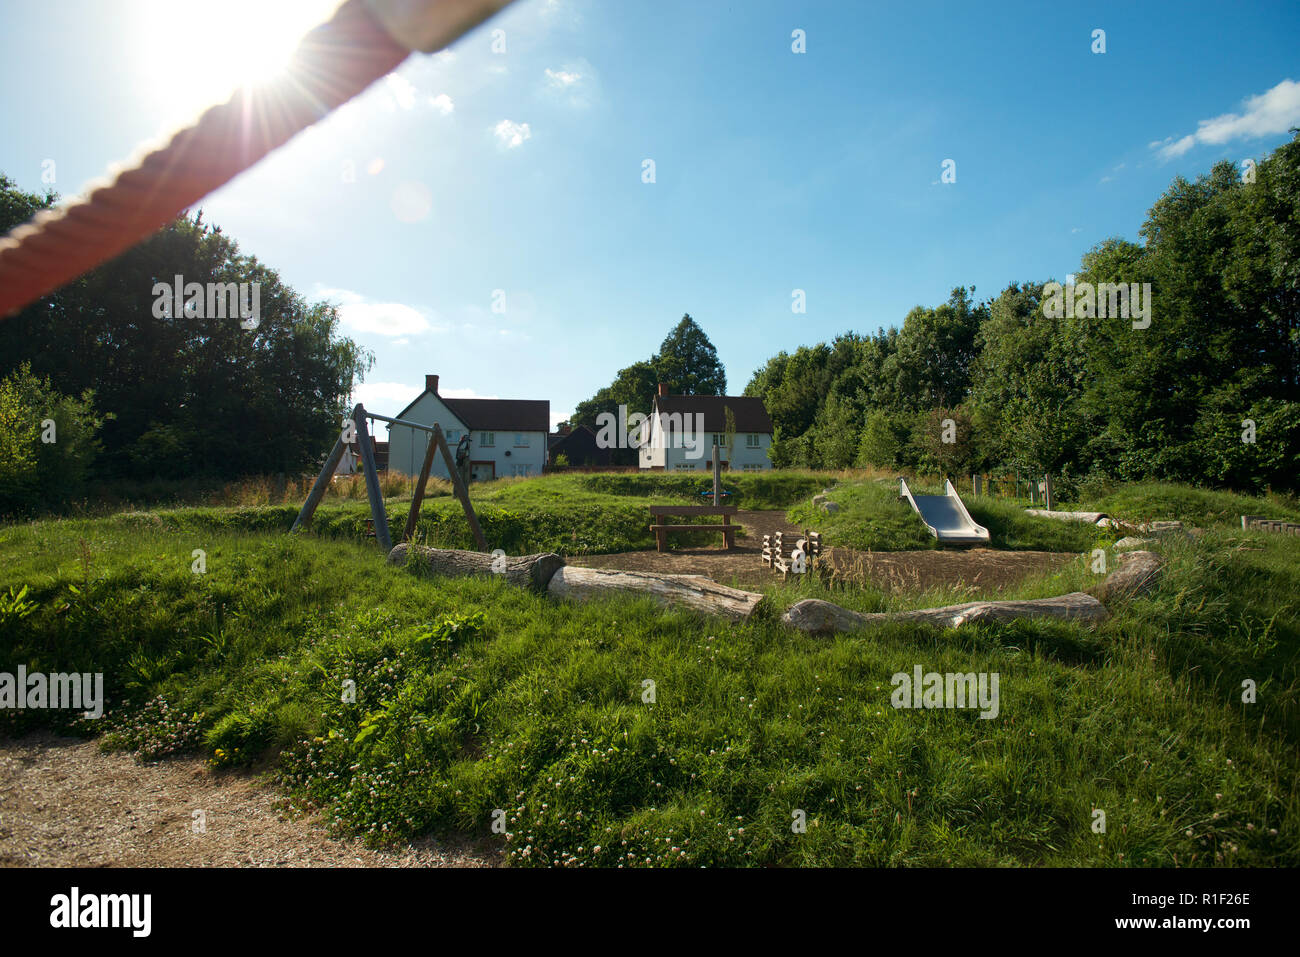 Urban development with eco communal play area - Stock Image